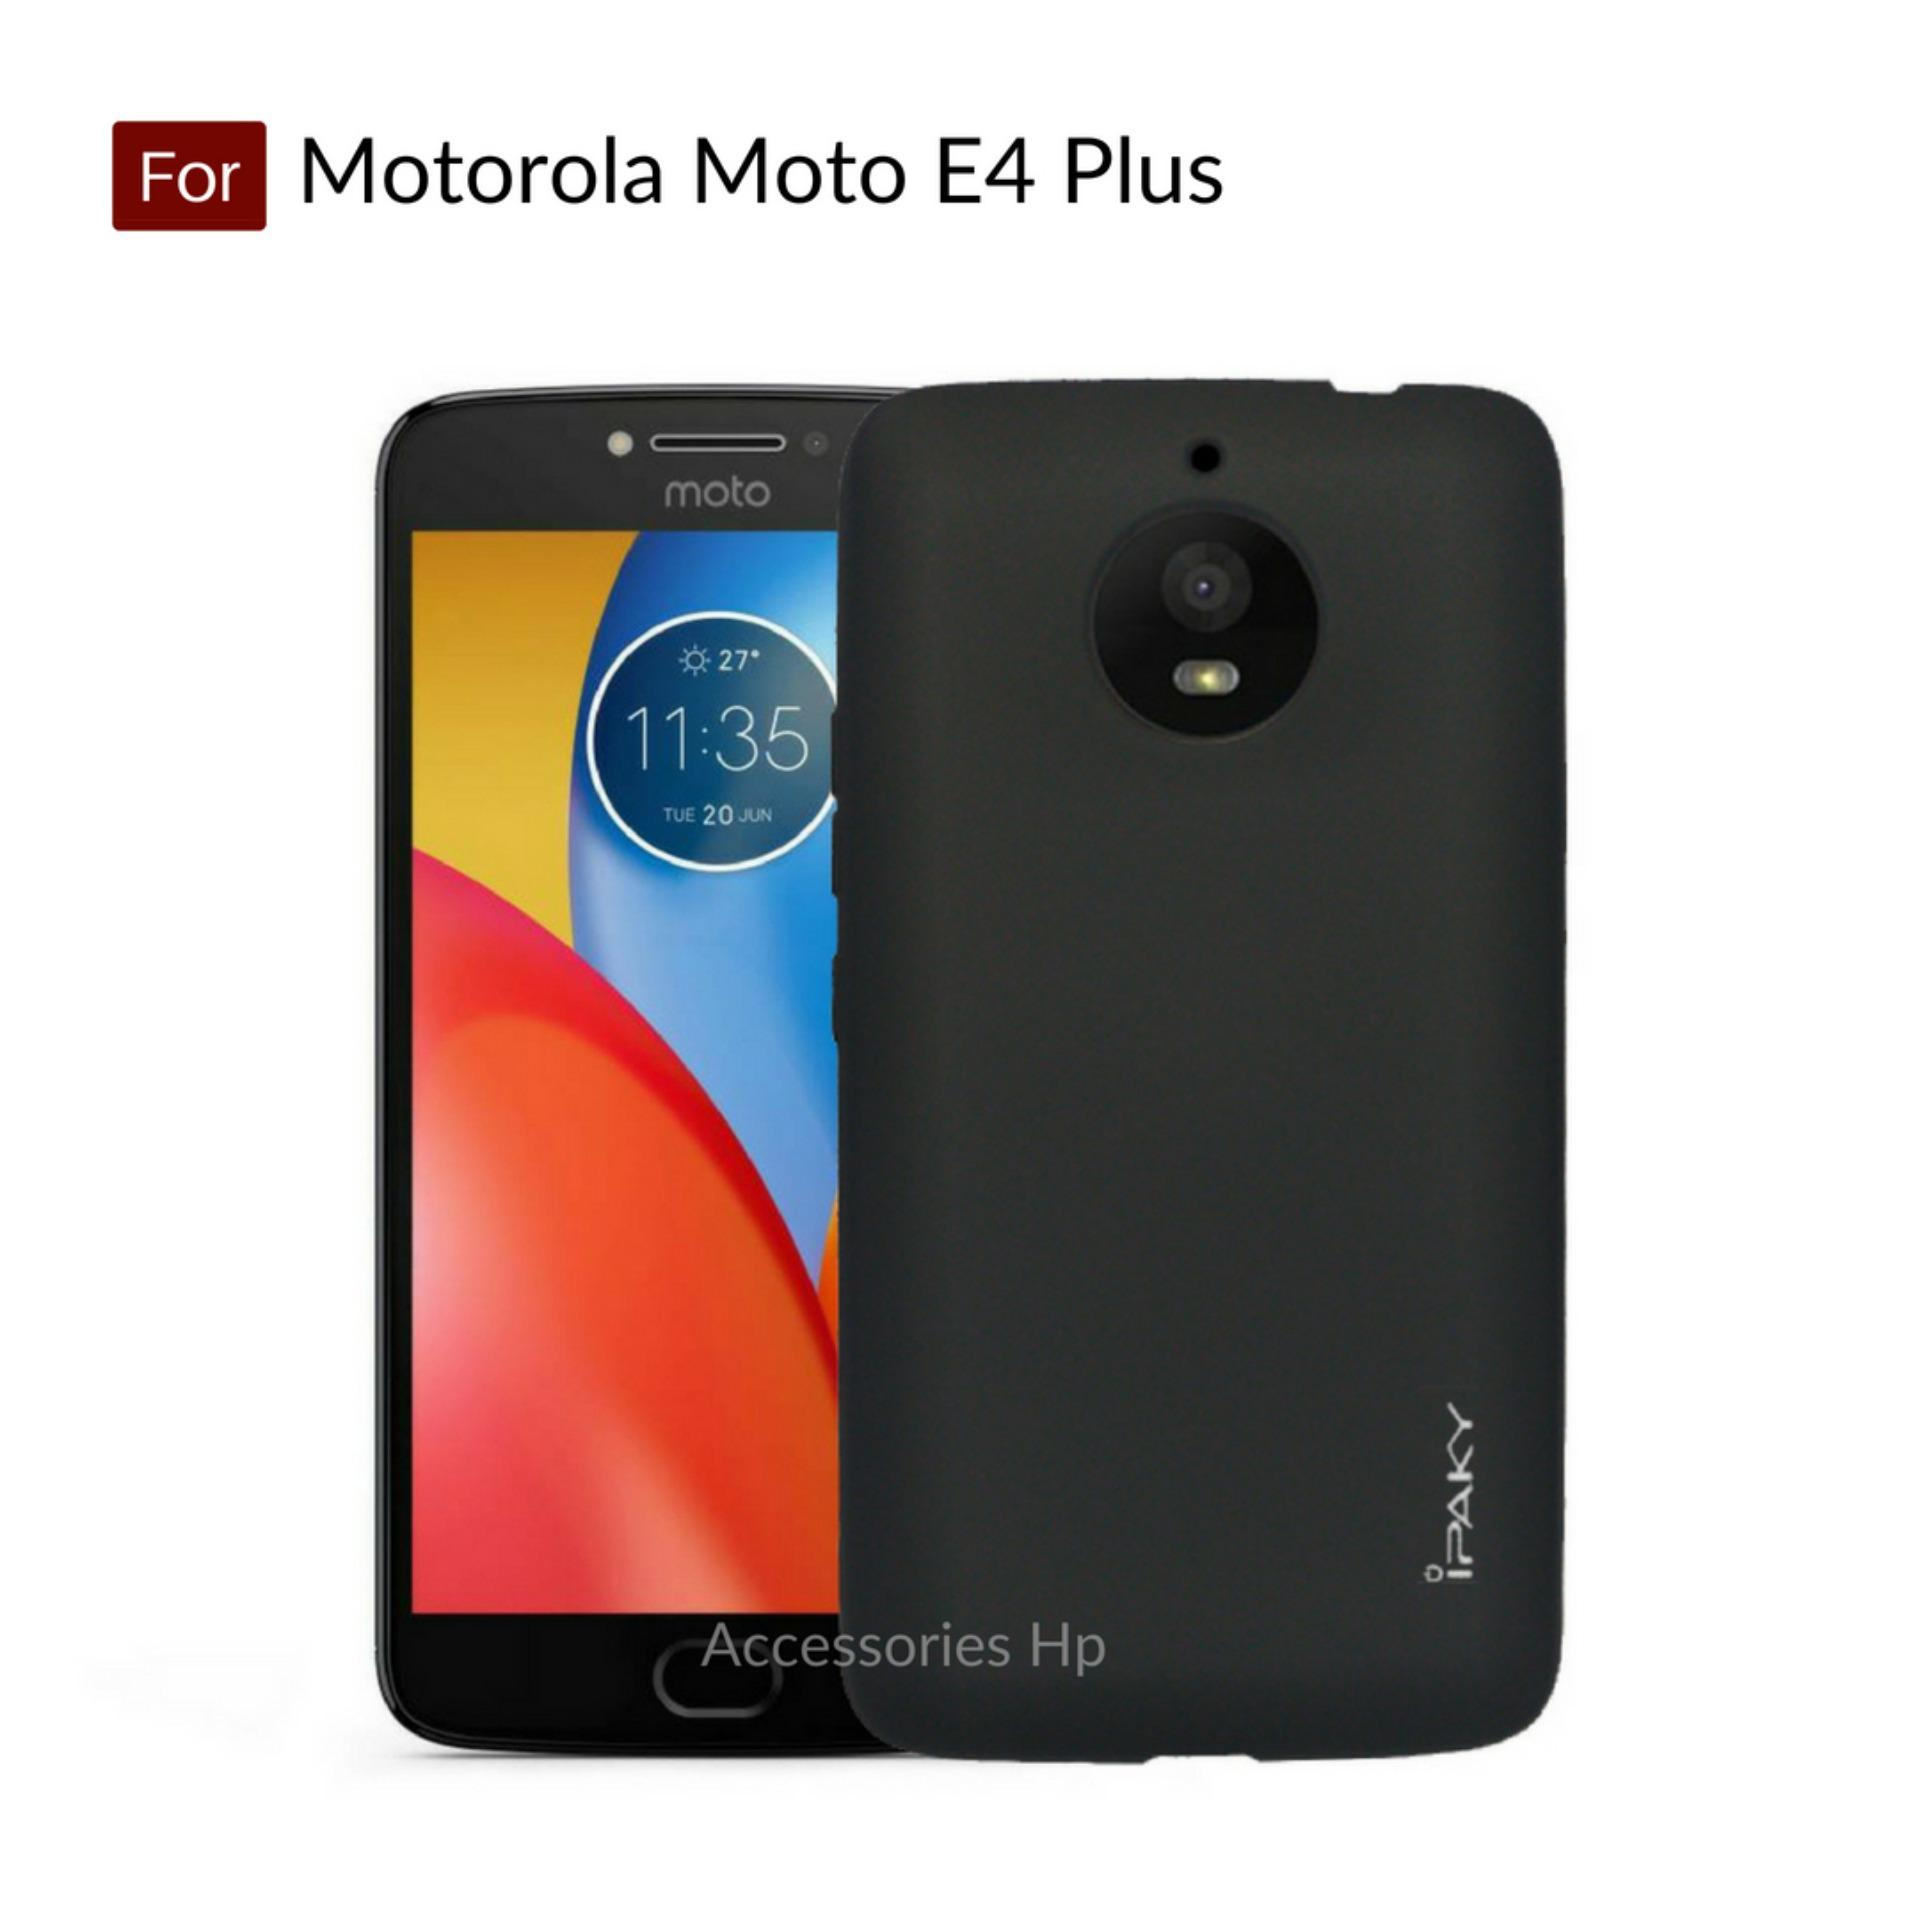 Accessories Hp iPaky Super Slim Matte Anti Fingerprint Hybrid Case for Motorola Moto E4 Plus ( E4+ ) - Black